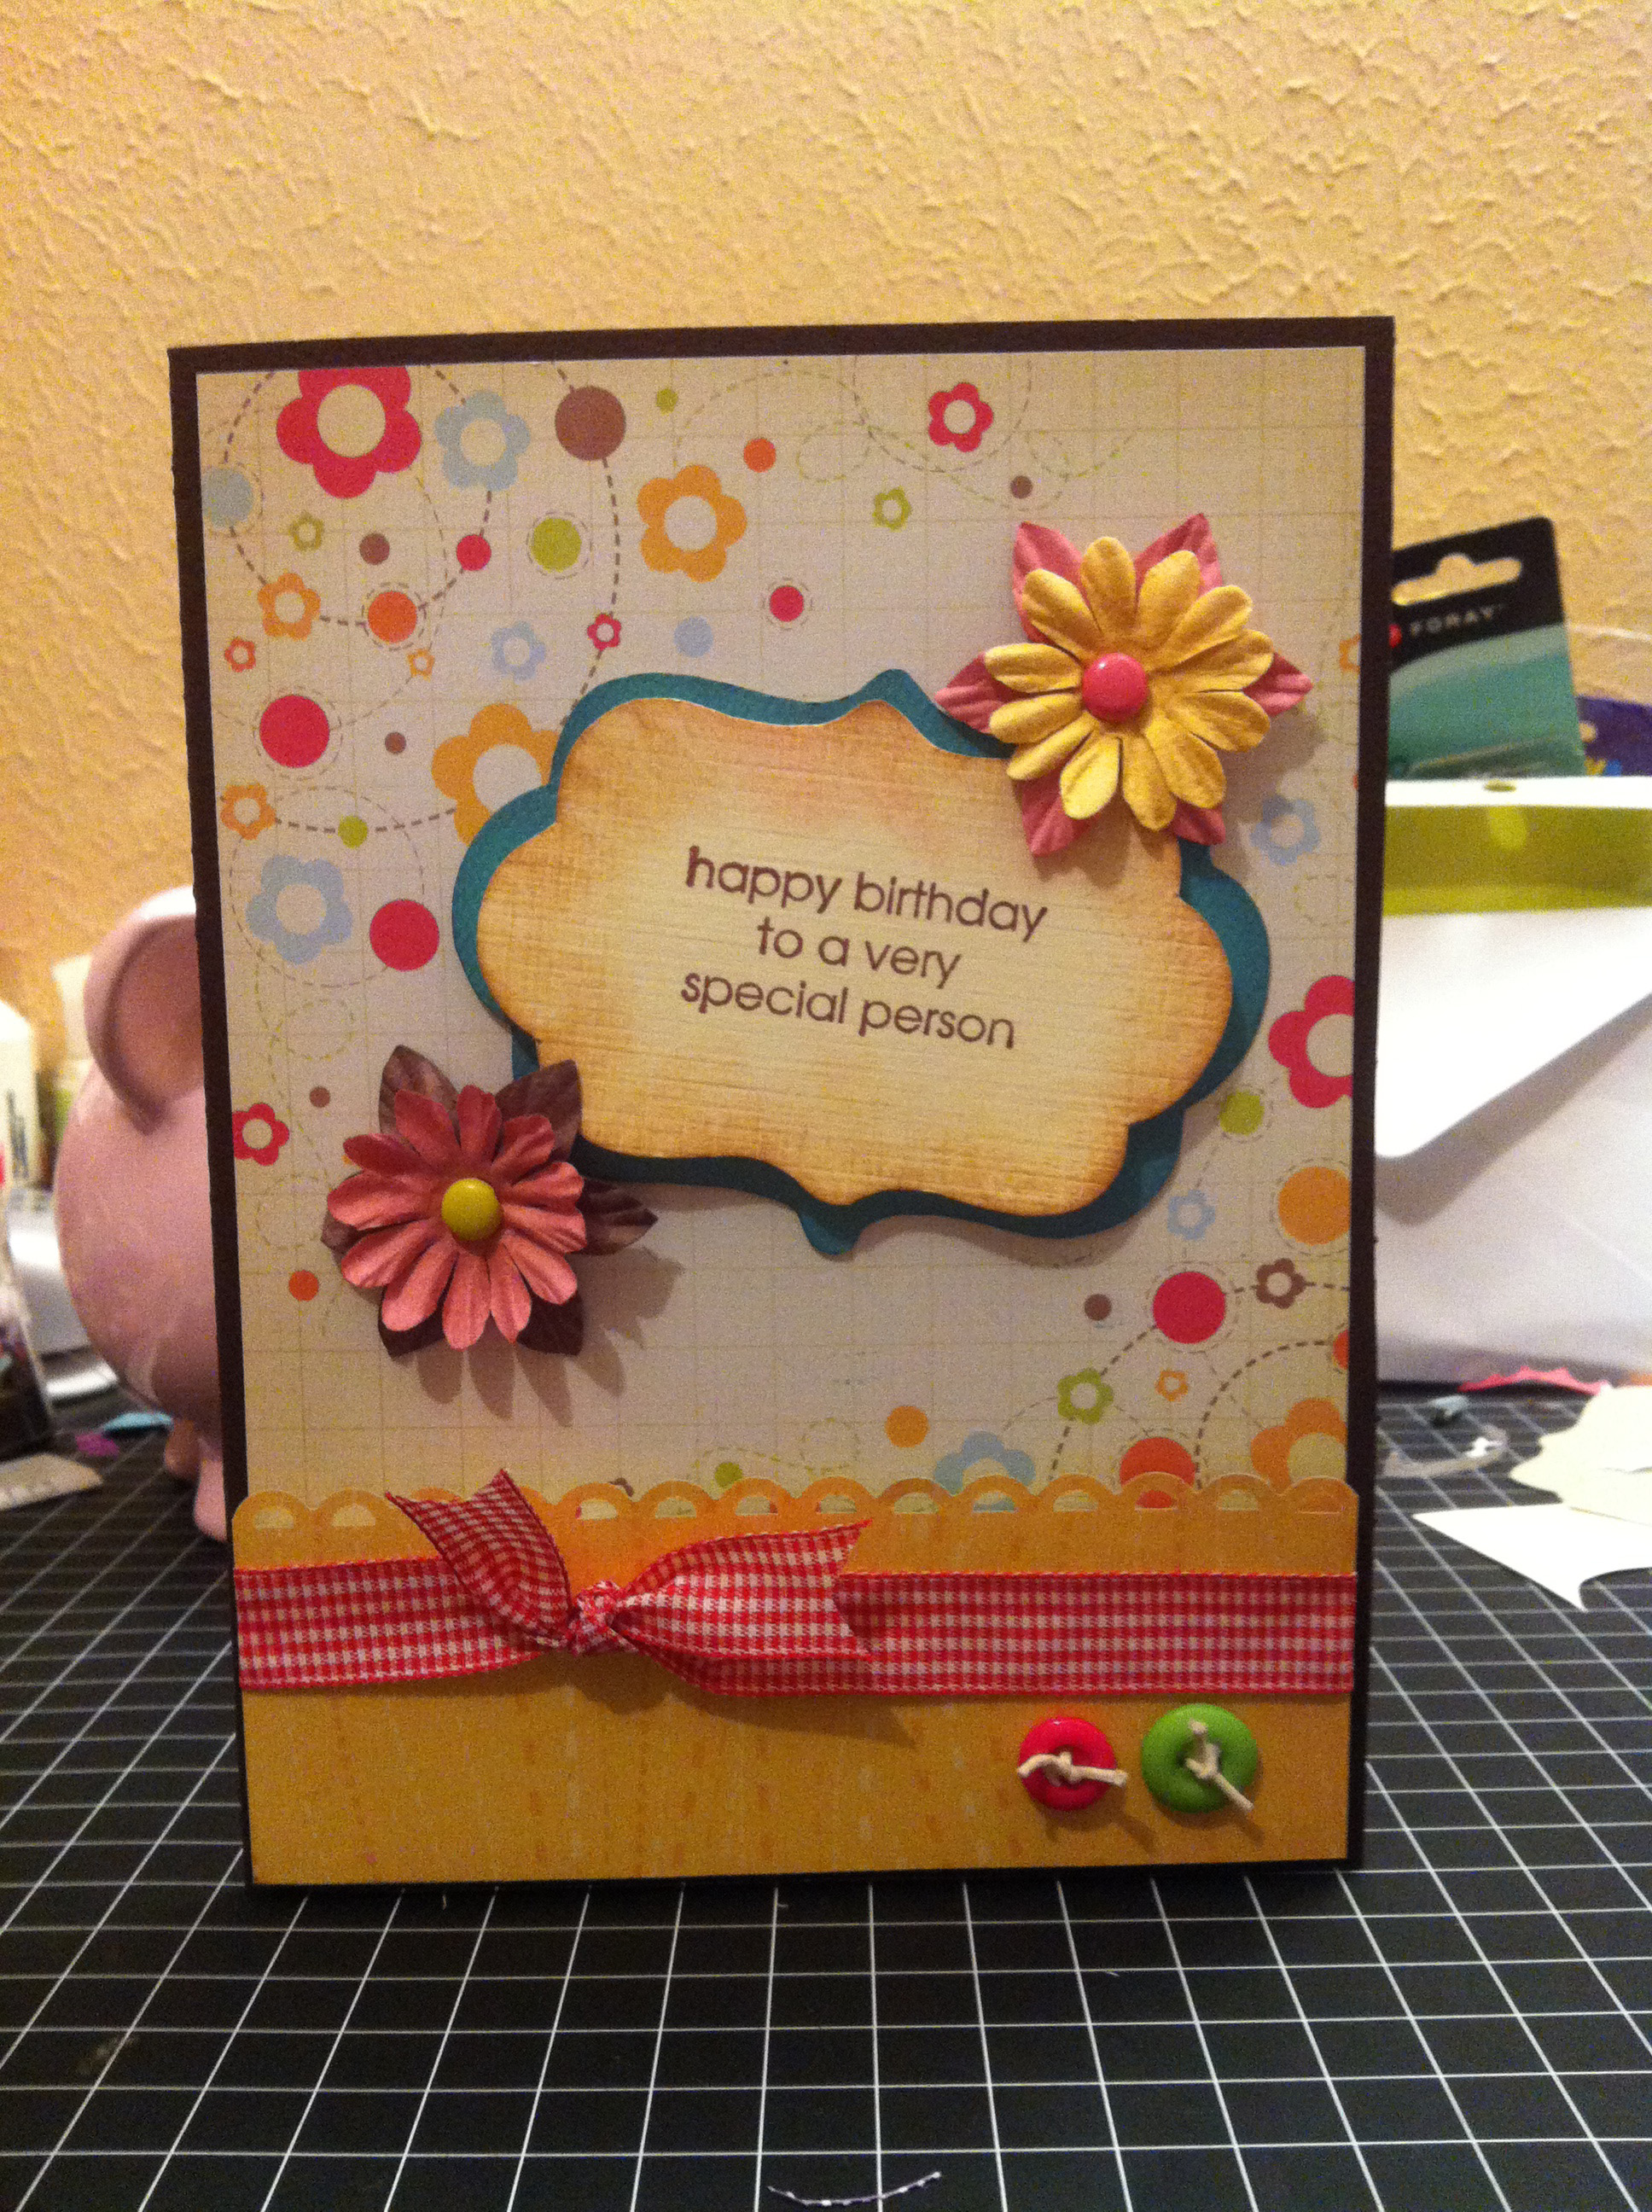 Card: HAPPY BIRTHDAY TO A VERY SPECIAL PERSON